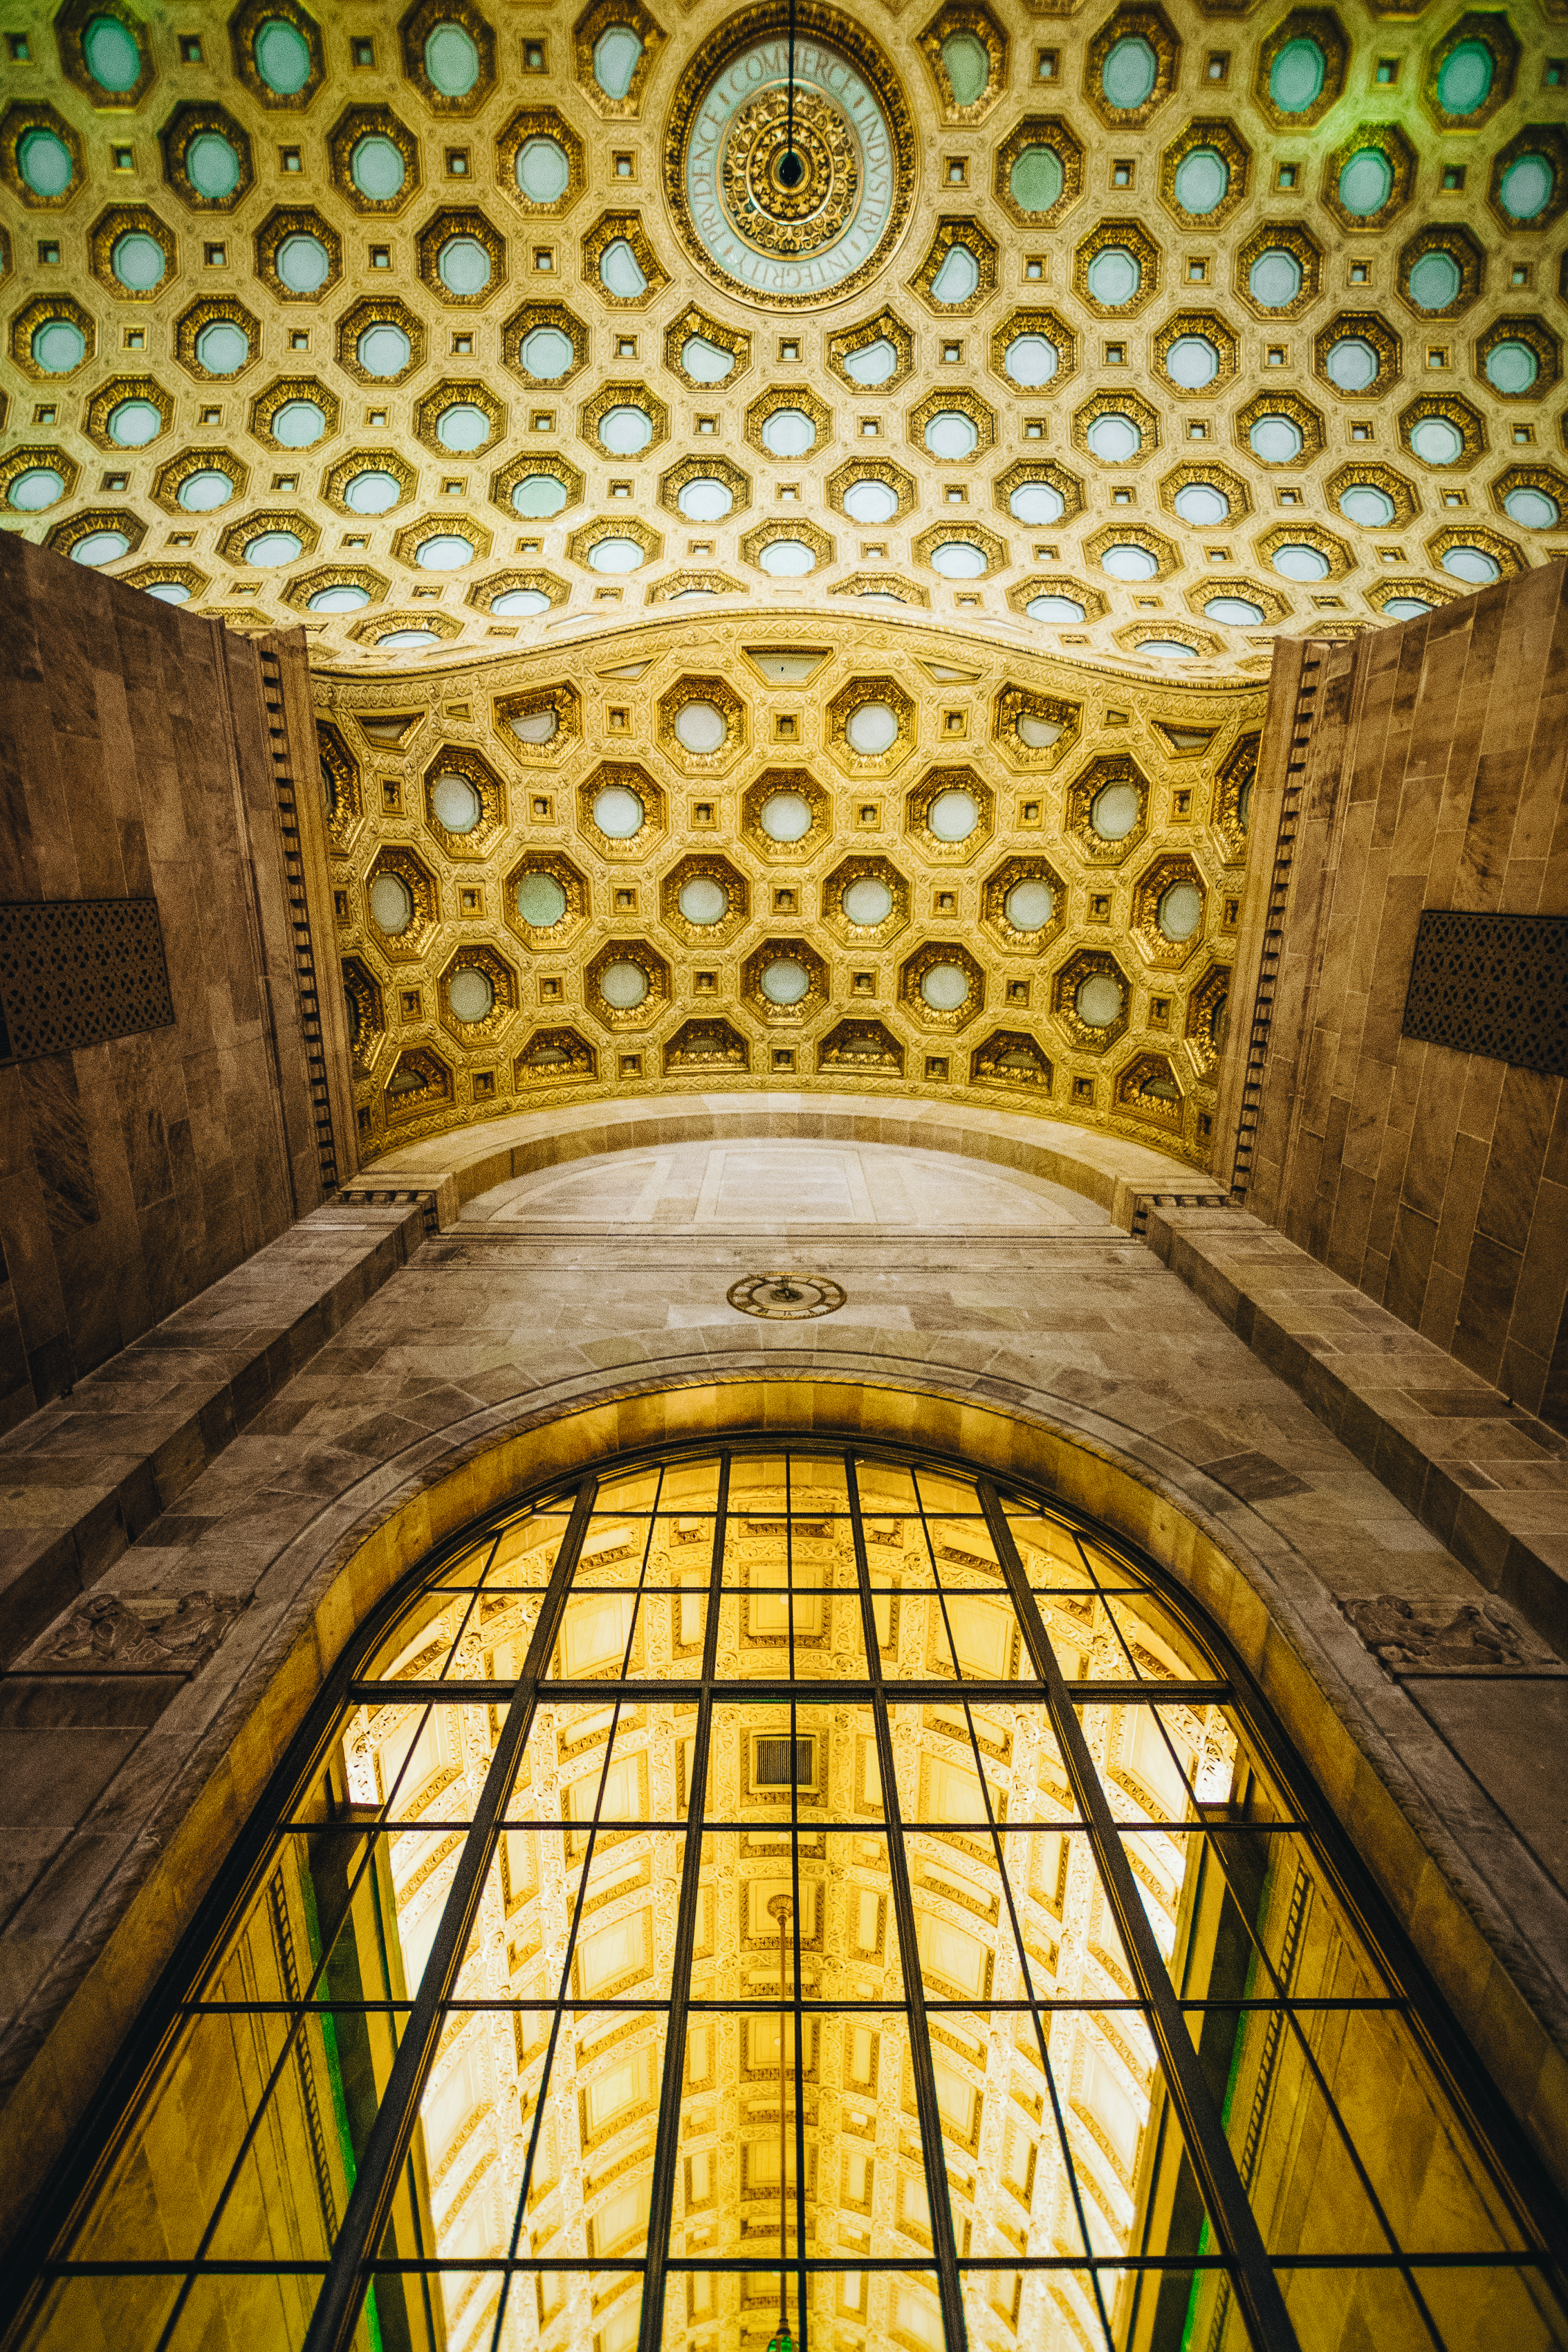 The famous ceiling of Commerce Court North.